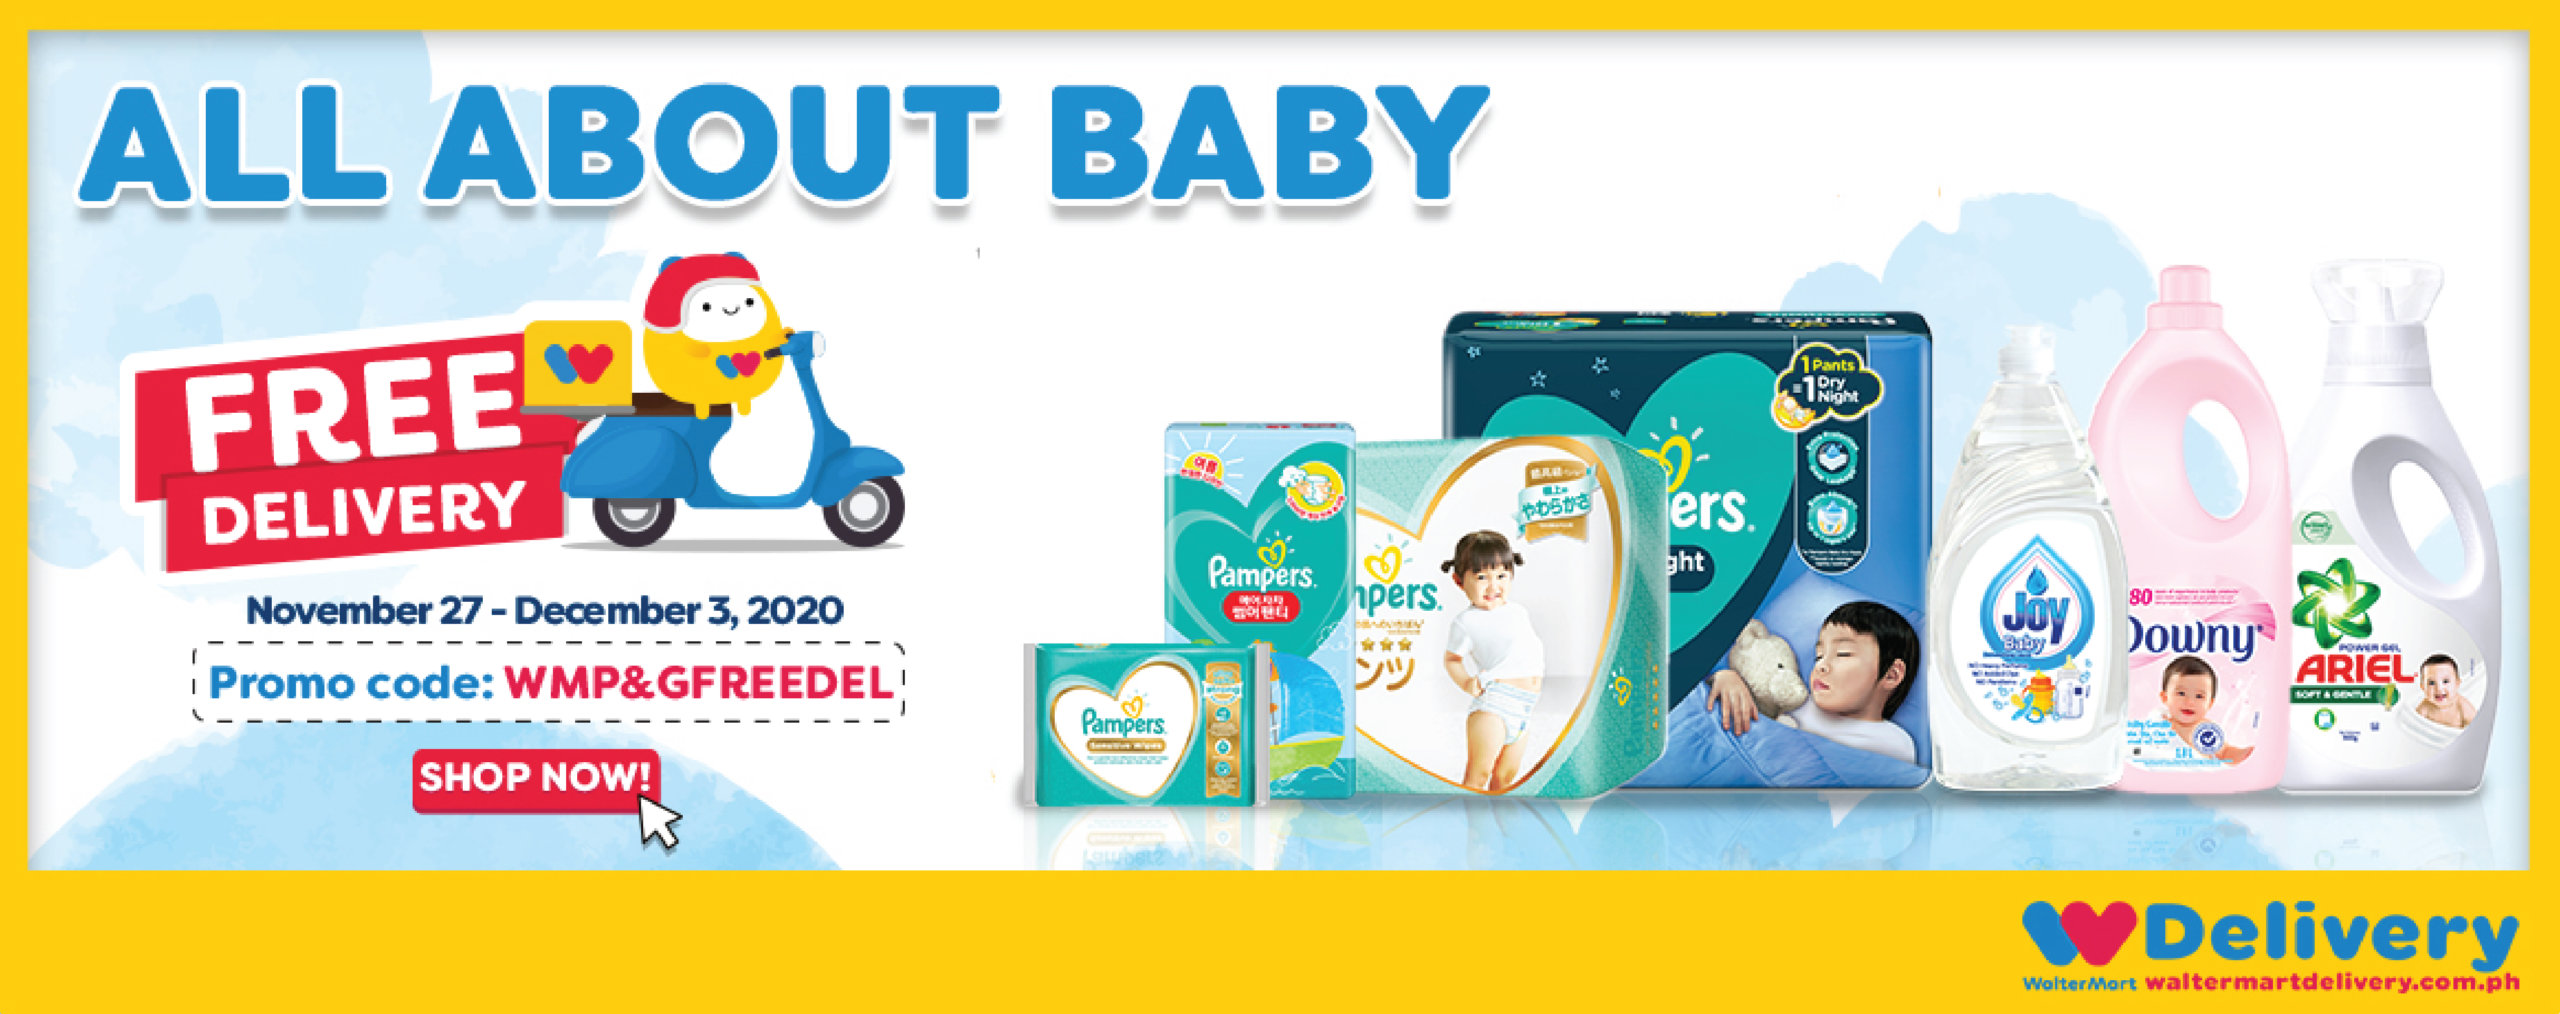 All About Baby Banner